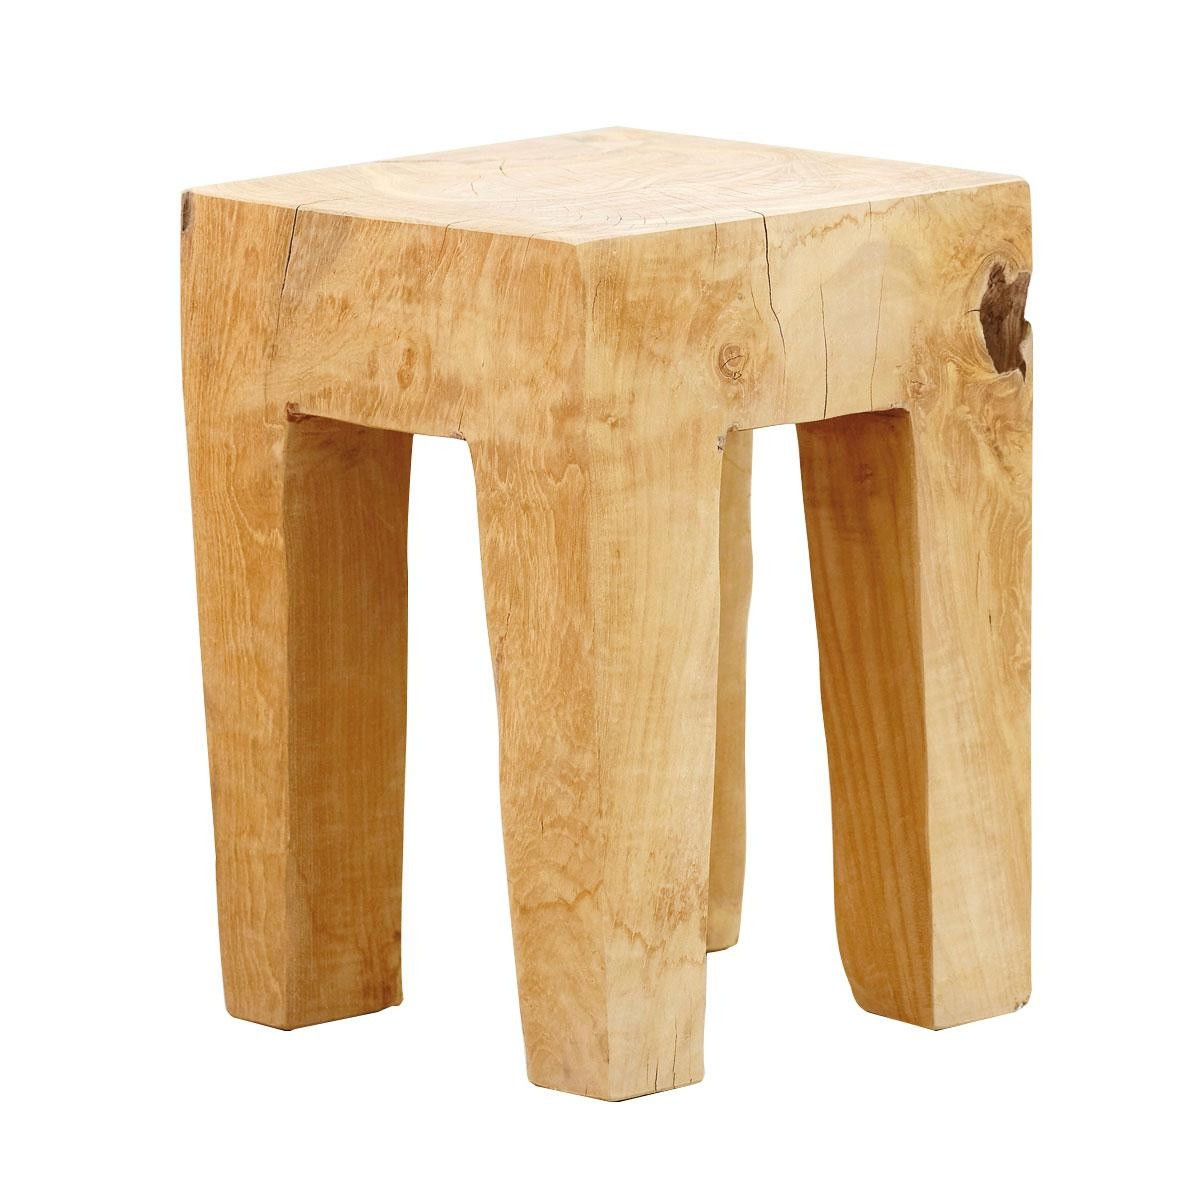 jan kurtz java stool rectangular ambientedirect rh ambientedirect com